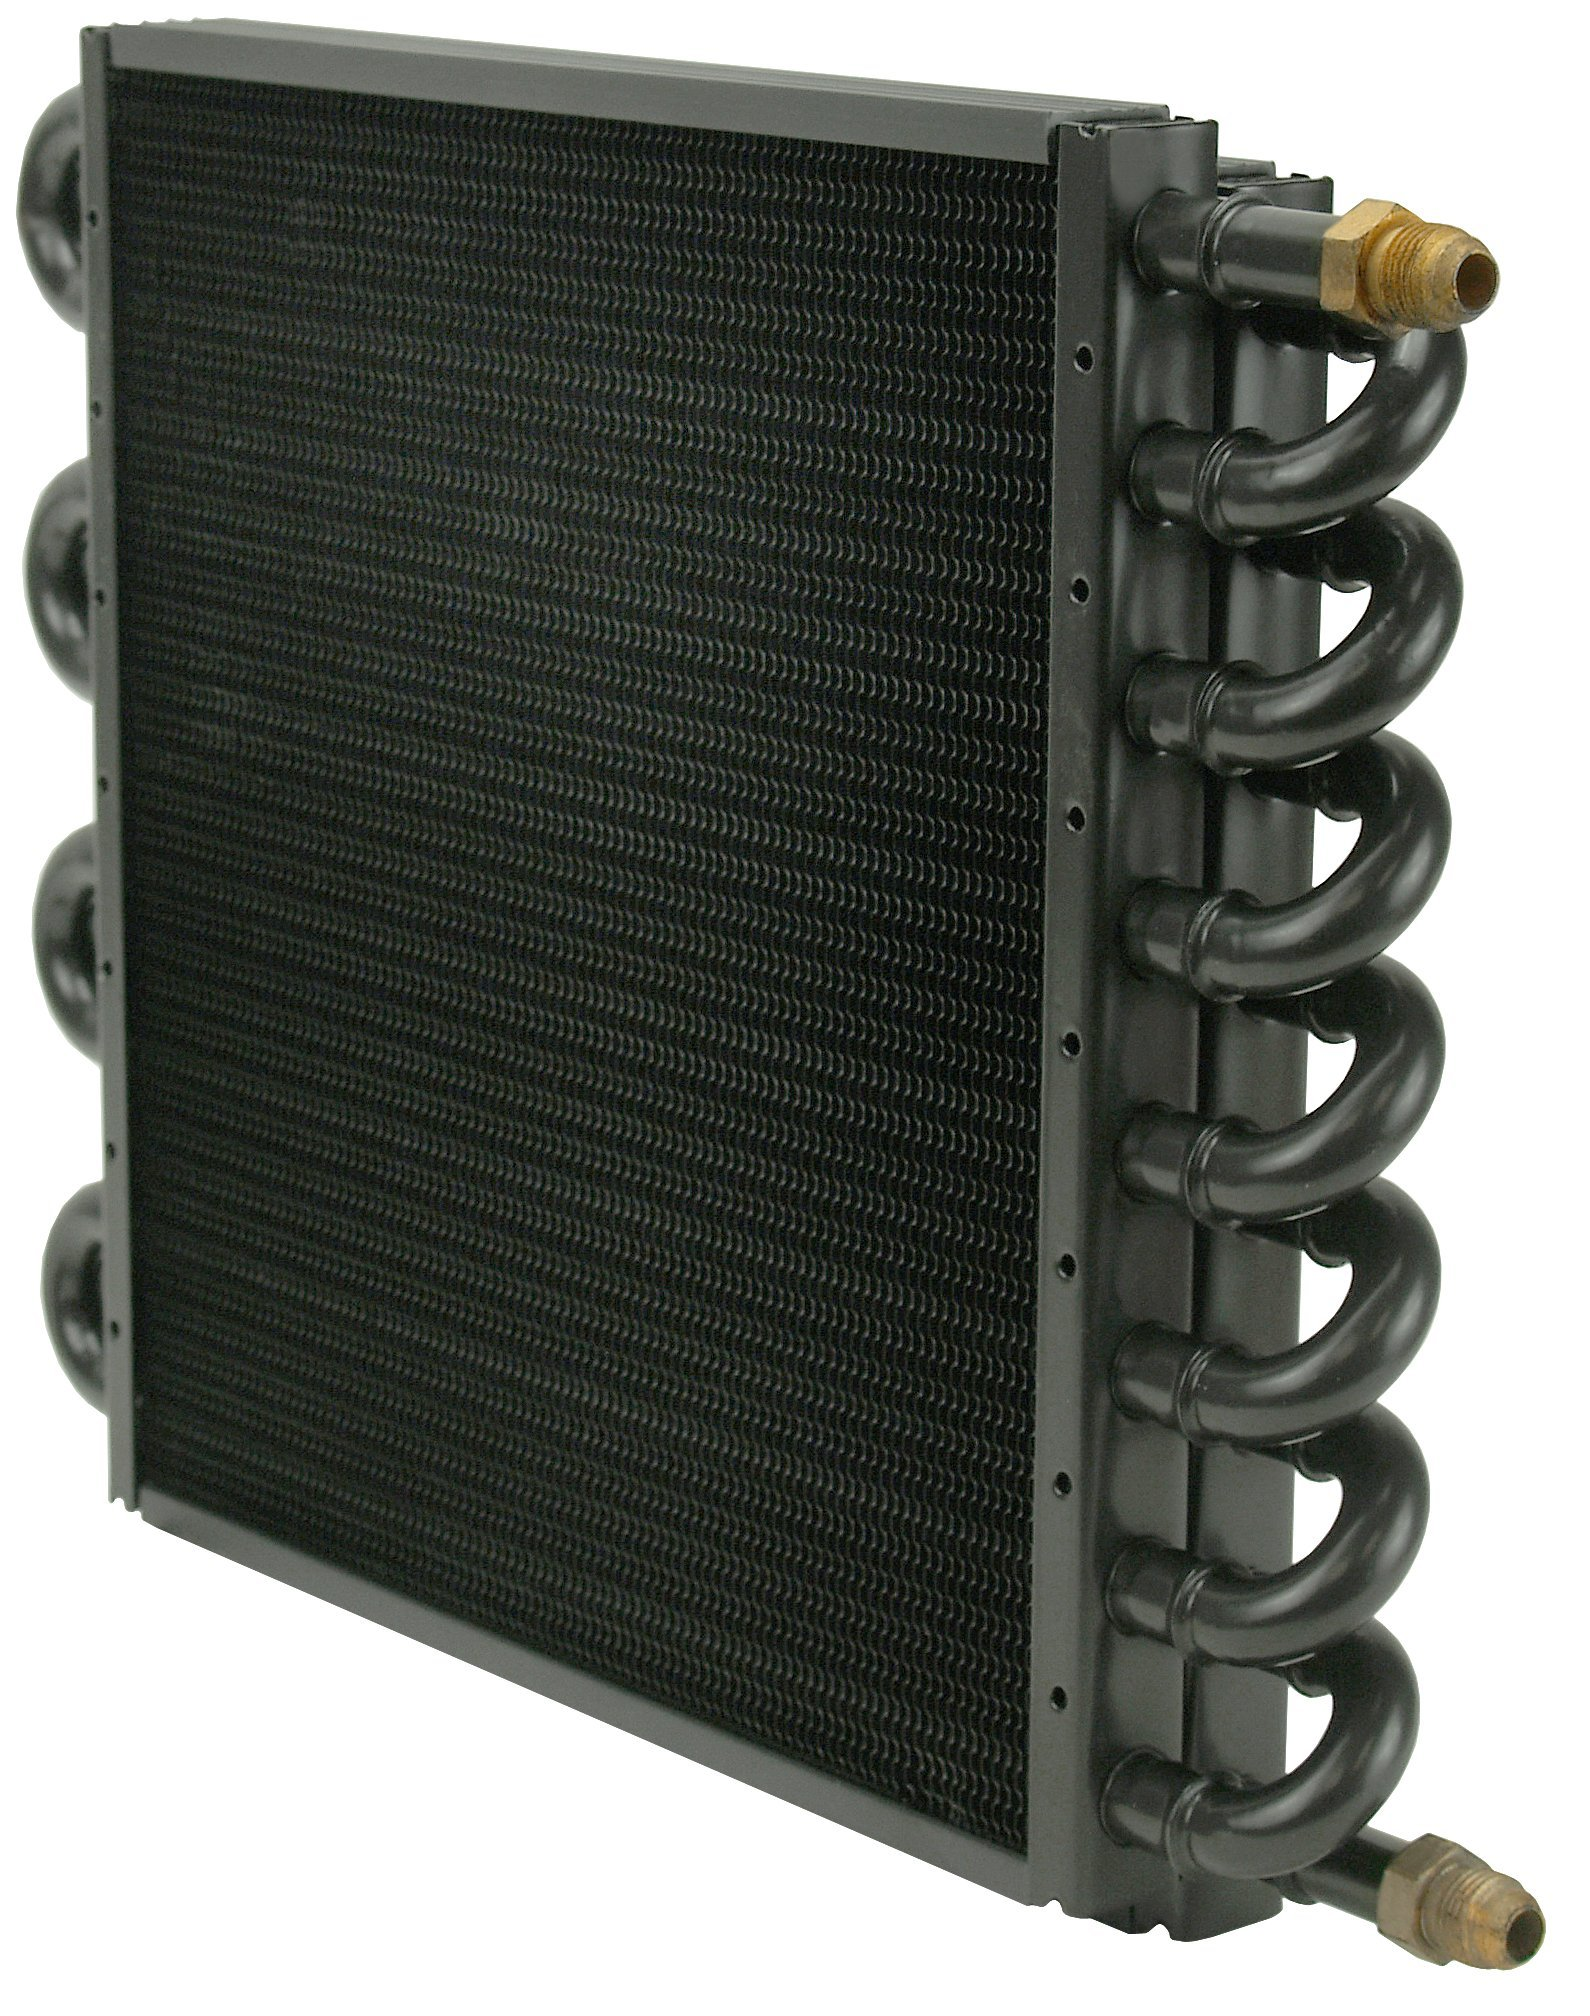 Derale 13300 Tube and Fin Cooler Core by Derale